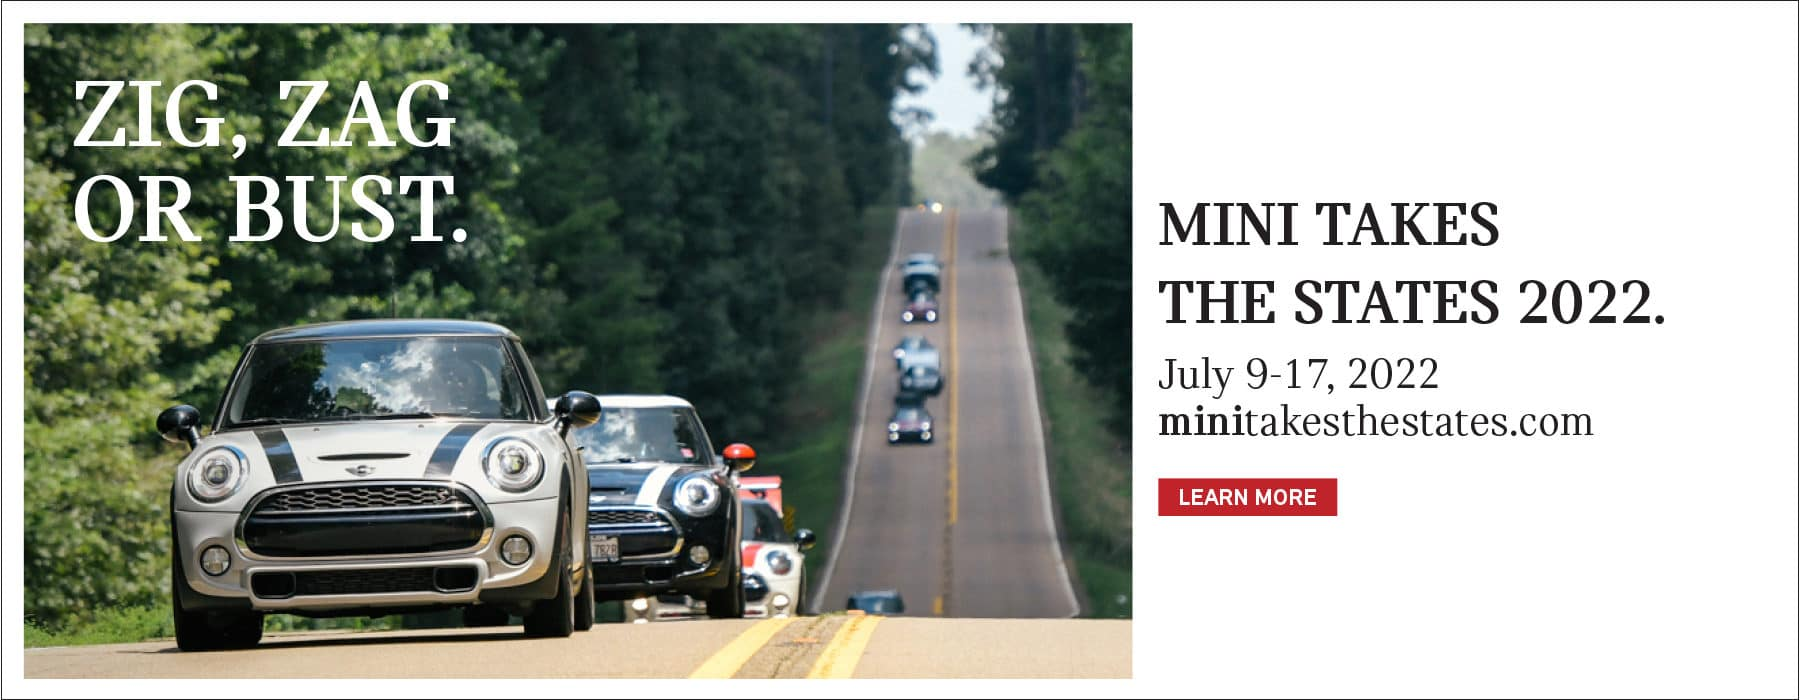 MINI takes the states 2022. July 9-17, 2022. minitakesthestates.com. Click to learn more. Image shows a row of MINI vehicles driving down the road.